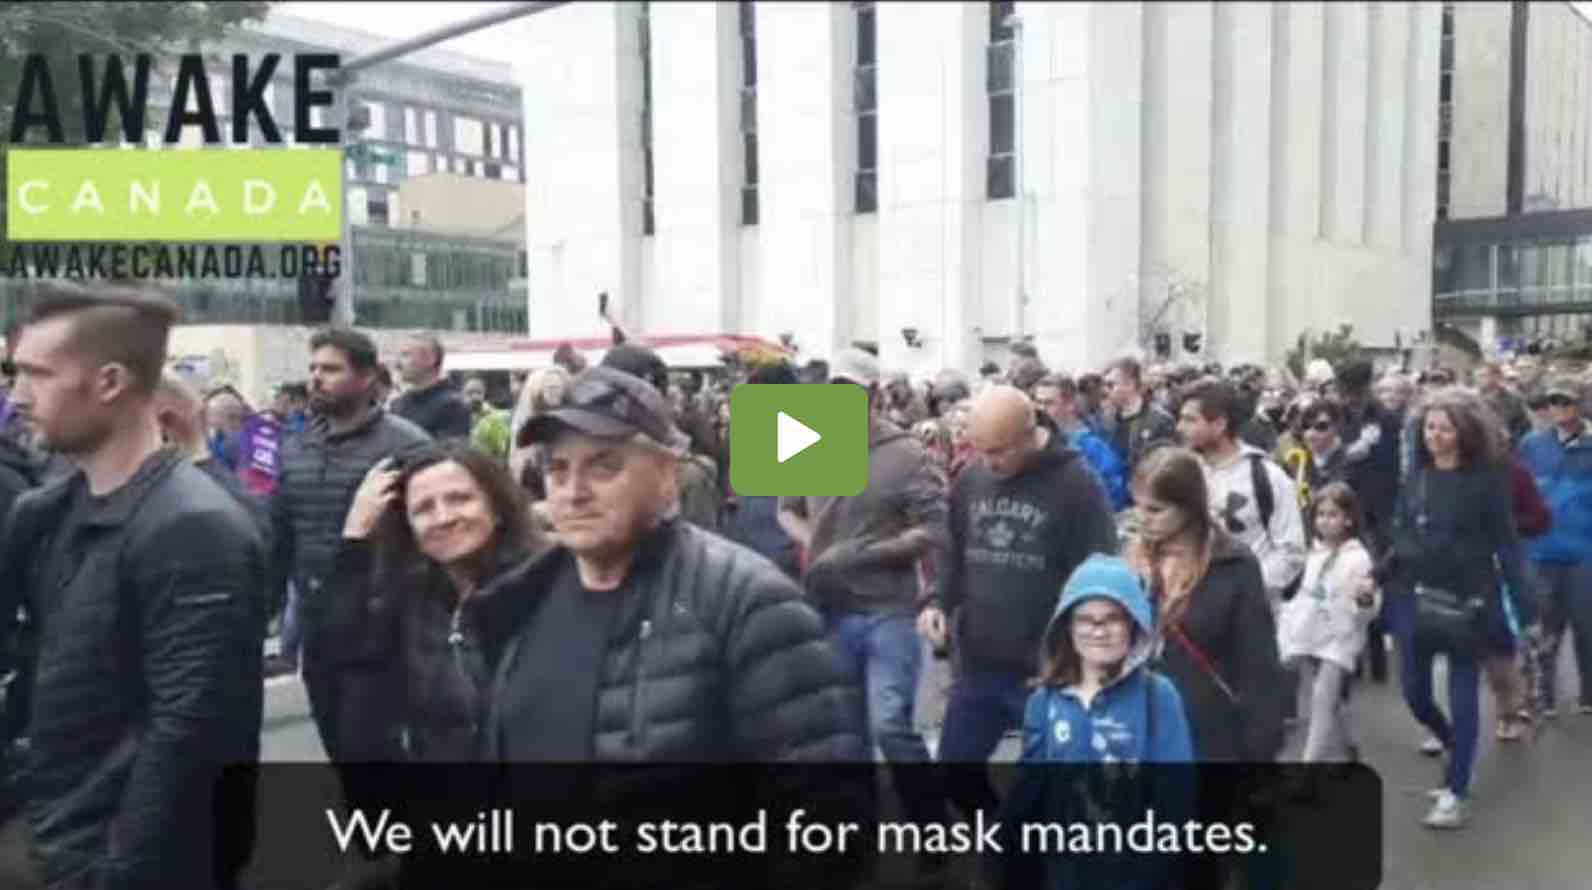 Canada is waking up!  Watch this!